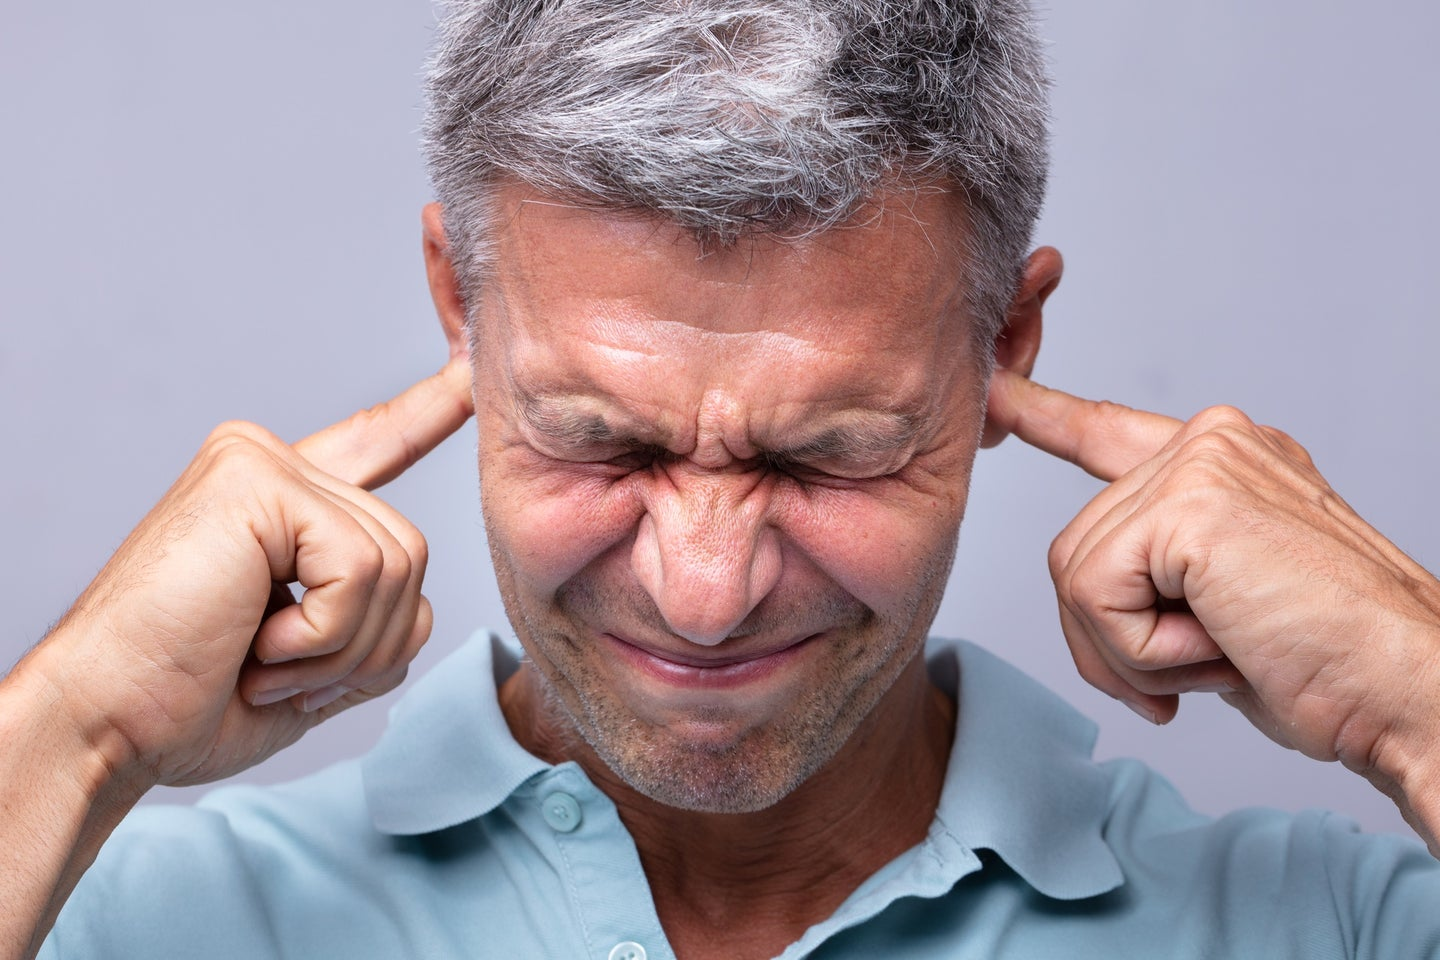 Havana syndrome sufferer holding ears and temple in pain